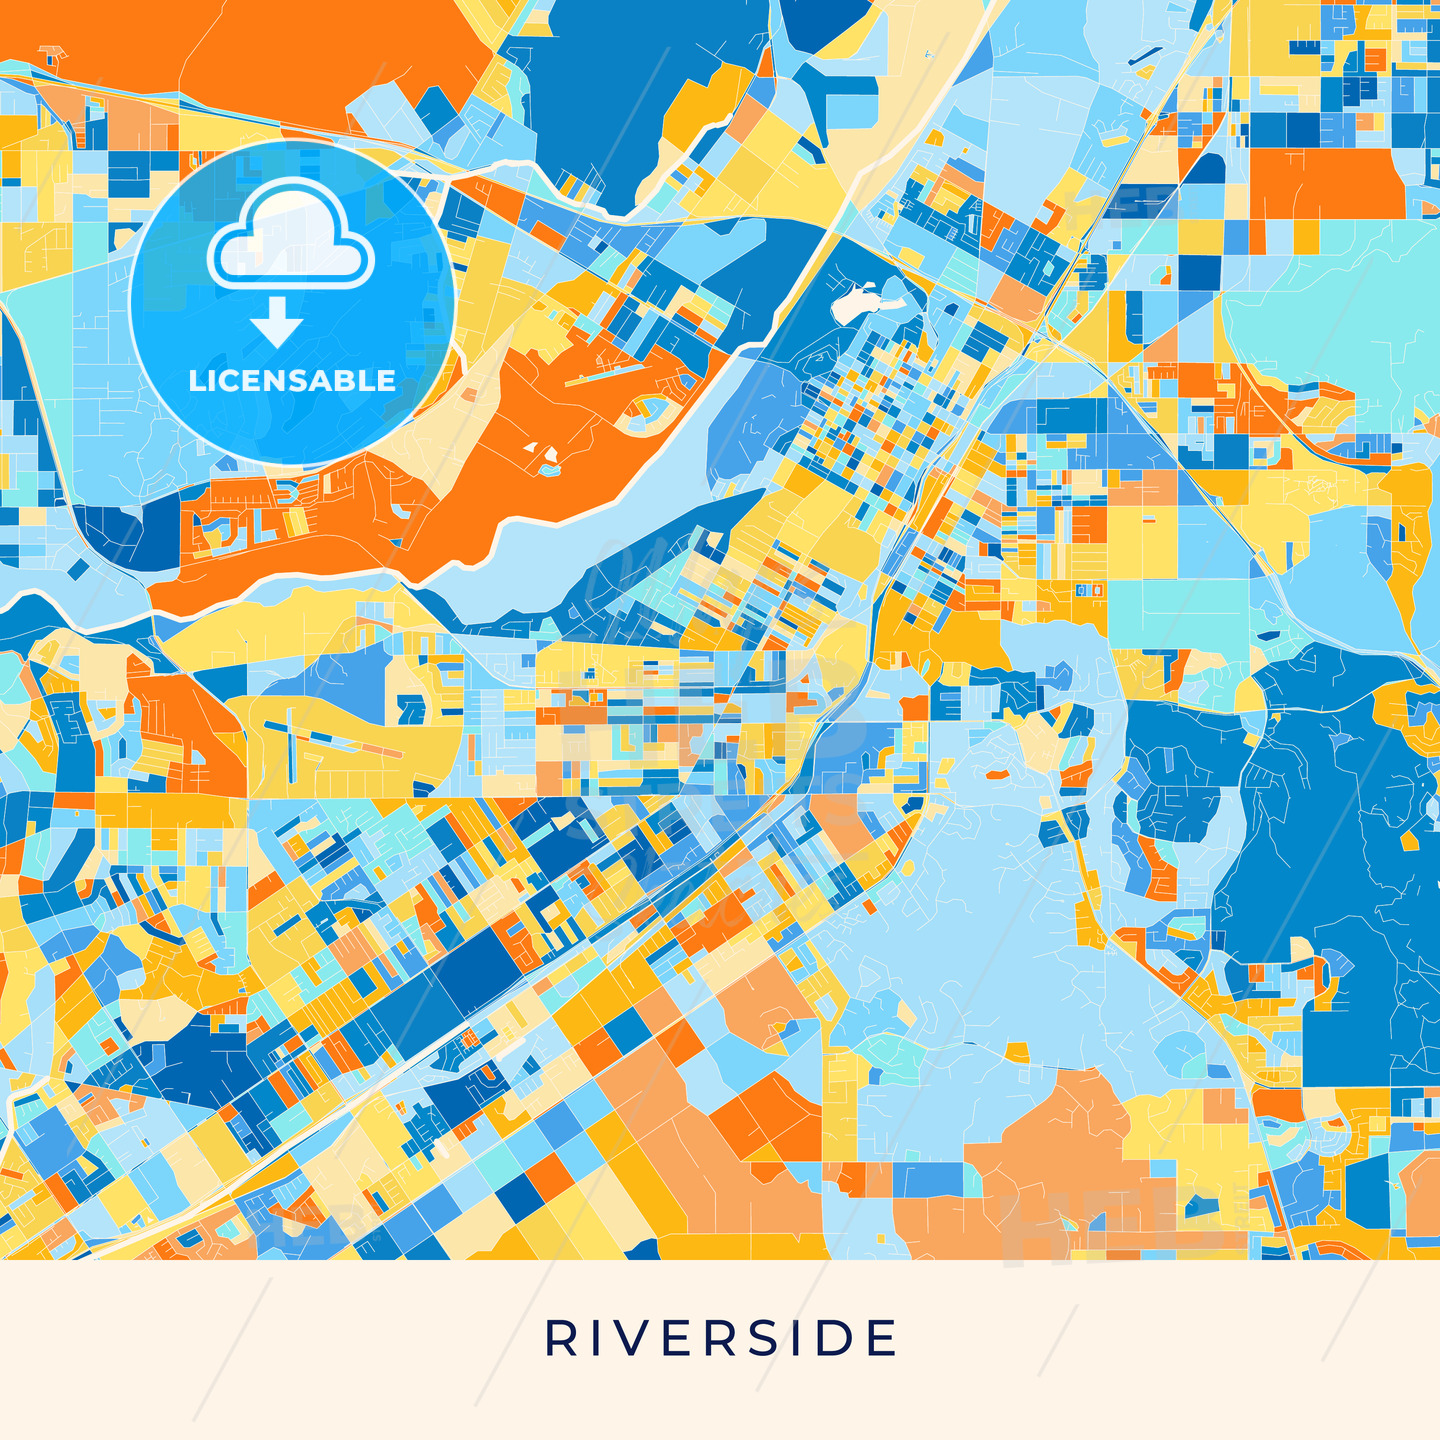 Riverside colorful map poster template | HEBSTREITS Sketches